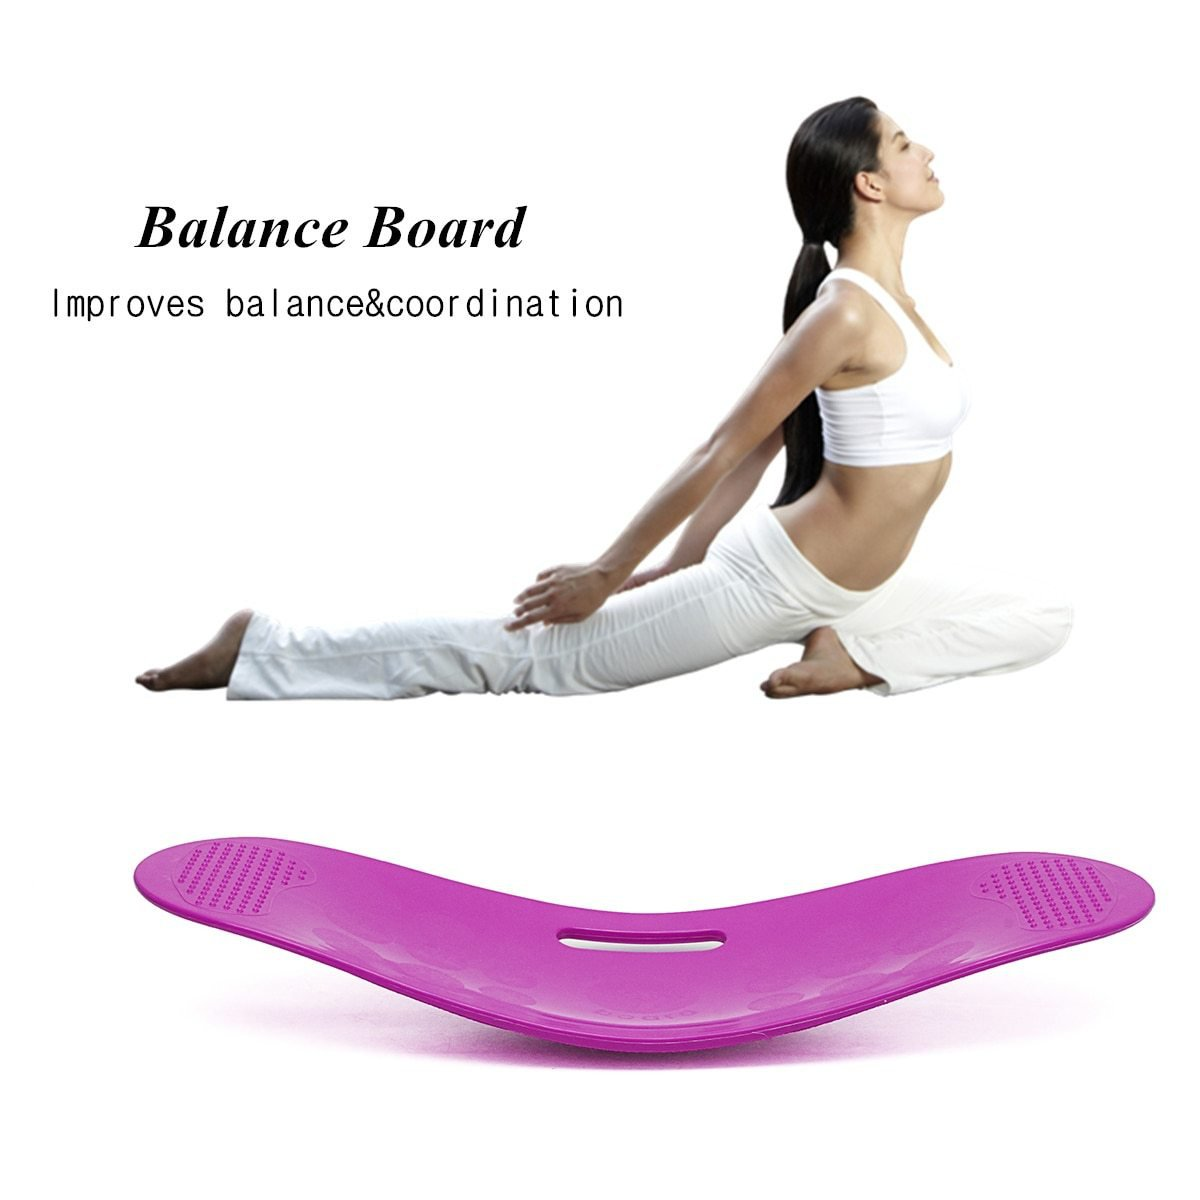 ABS Twisting Fitness Balance Board